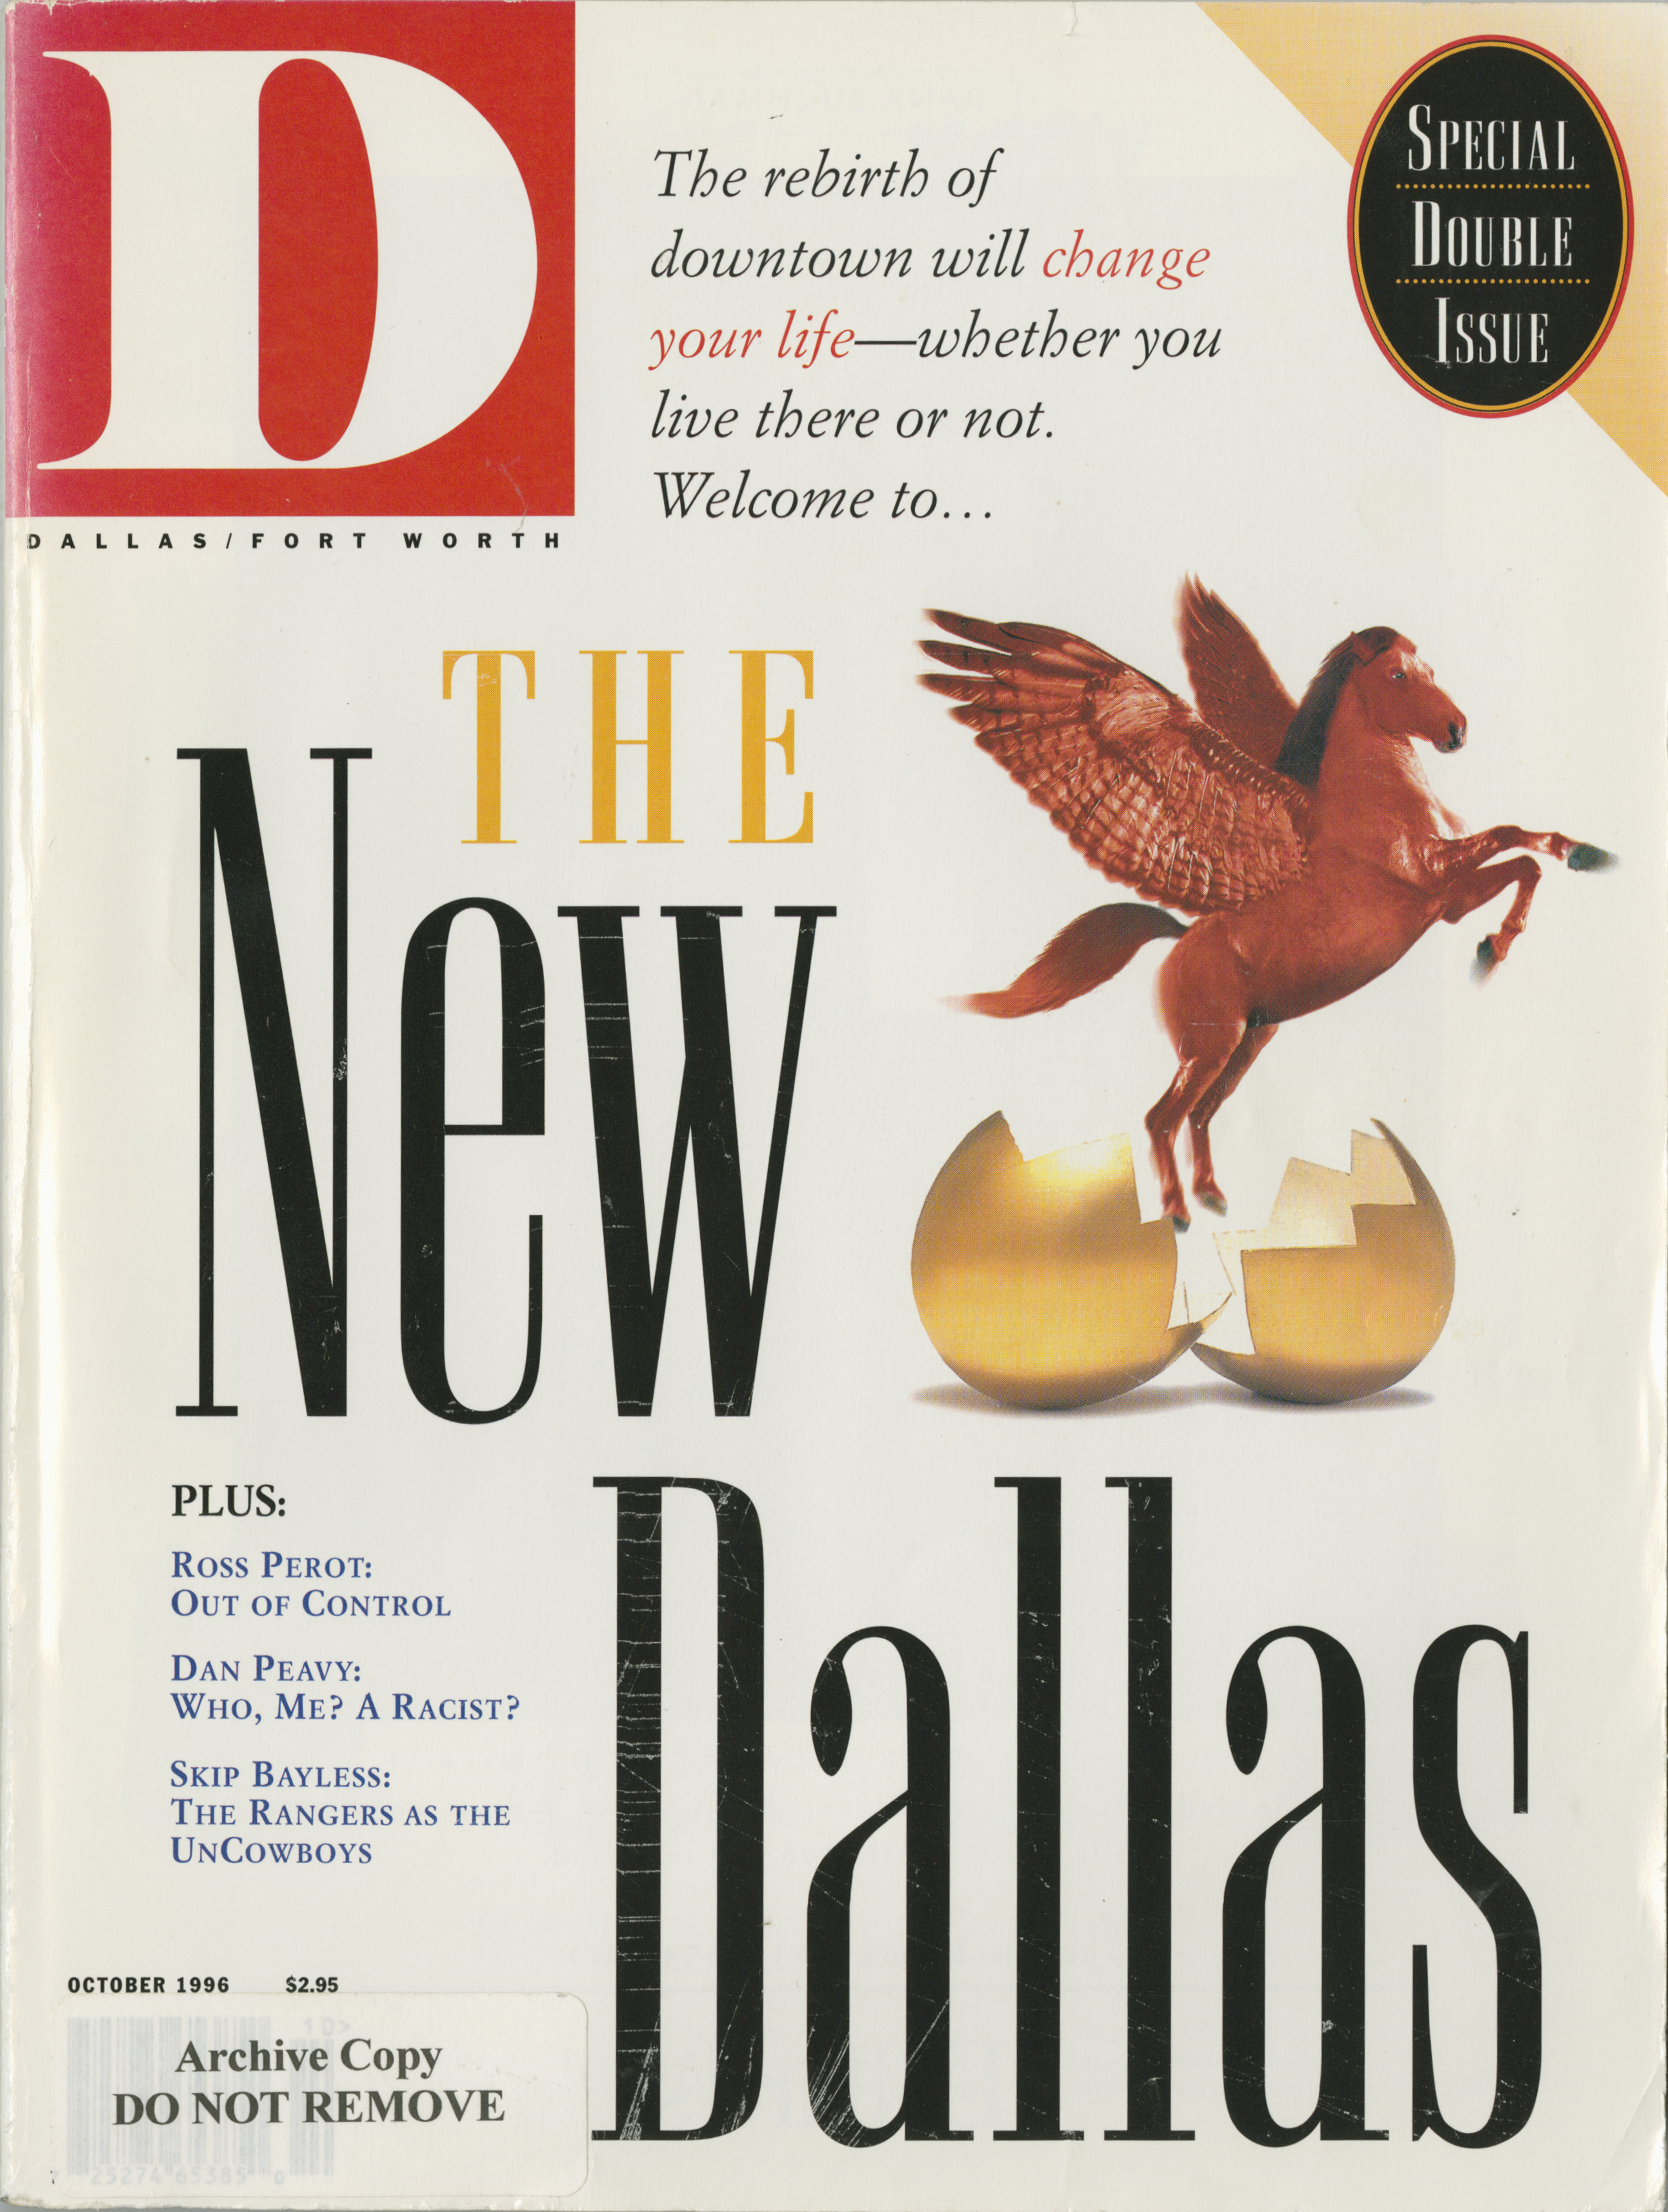 October 1996 cover